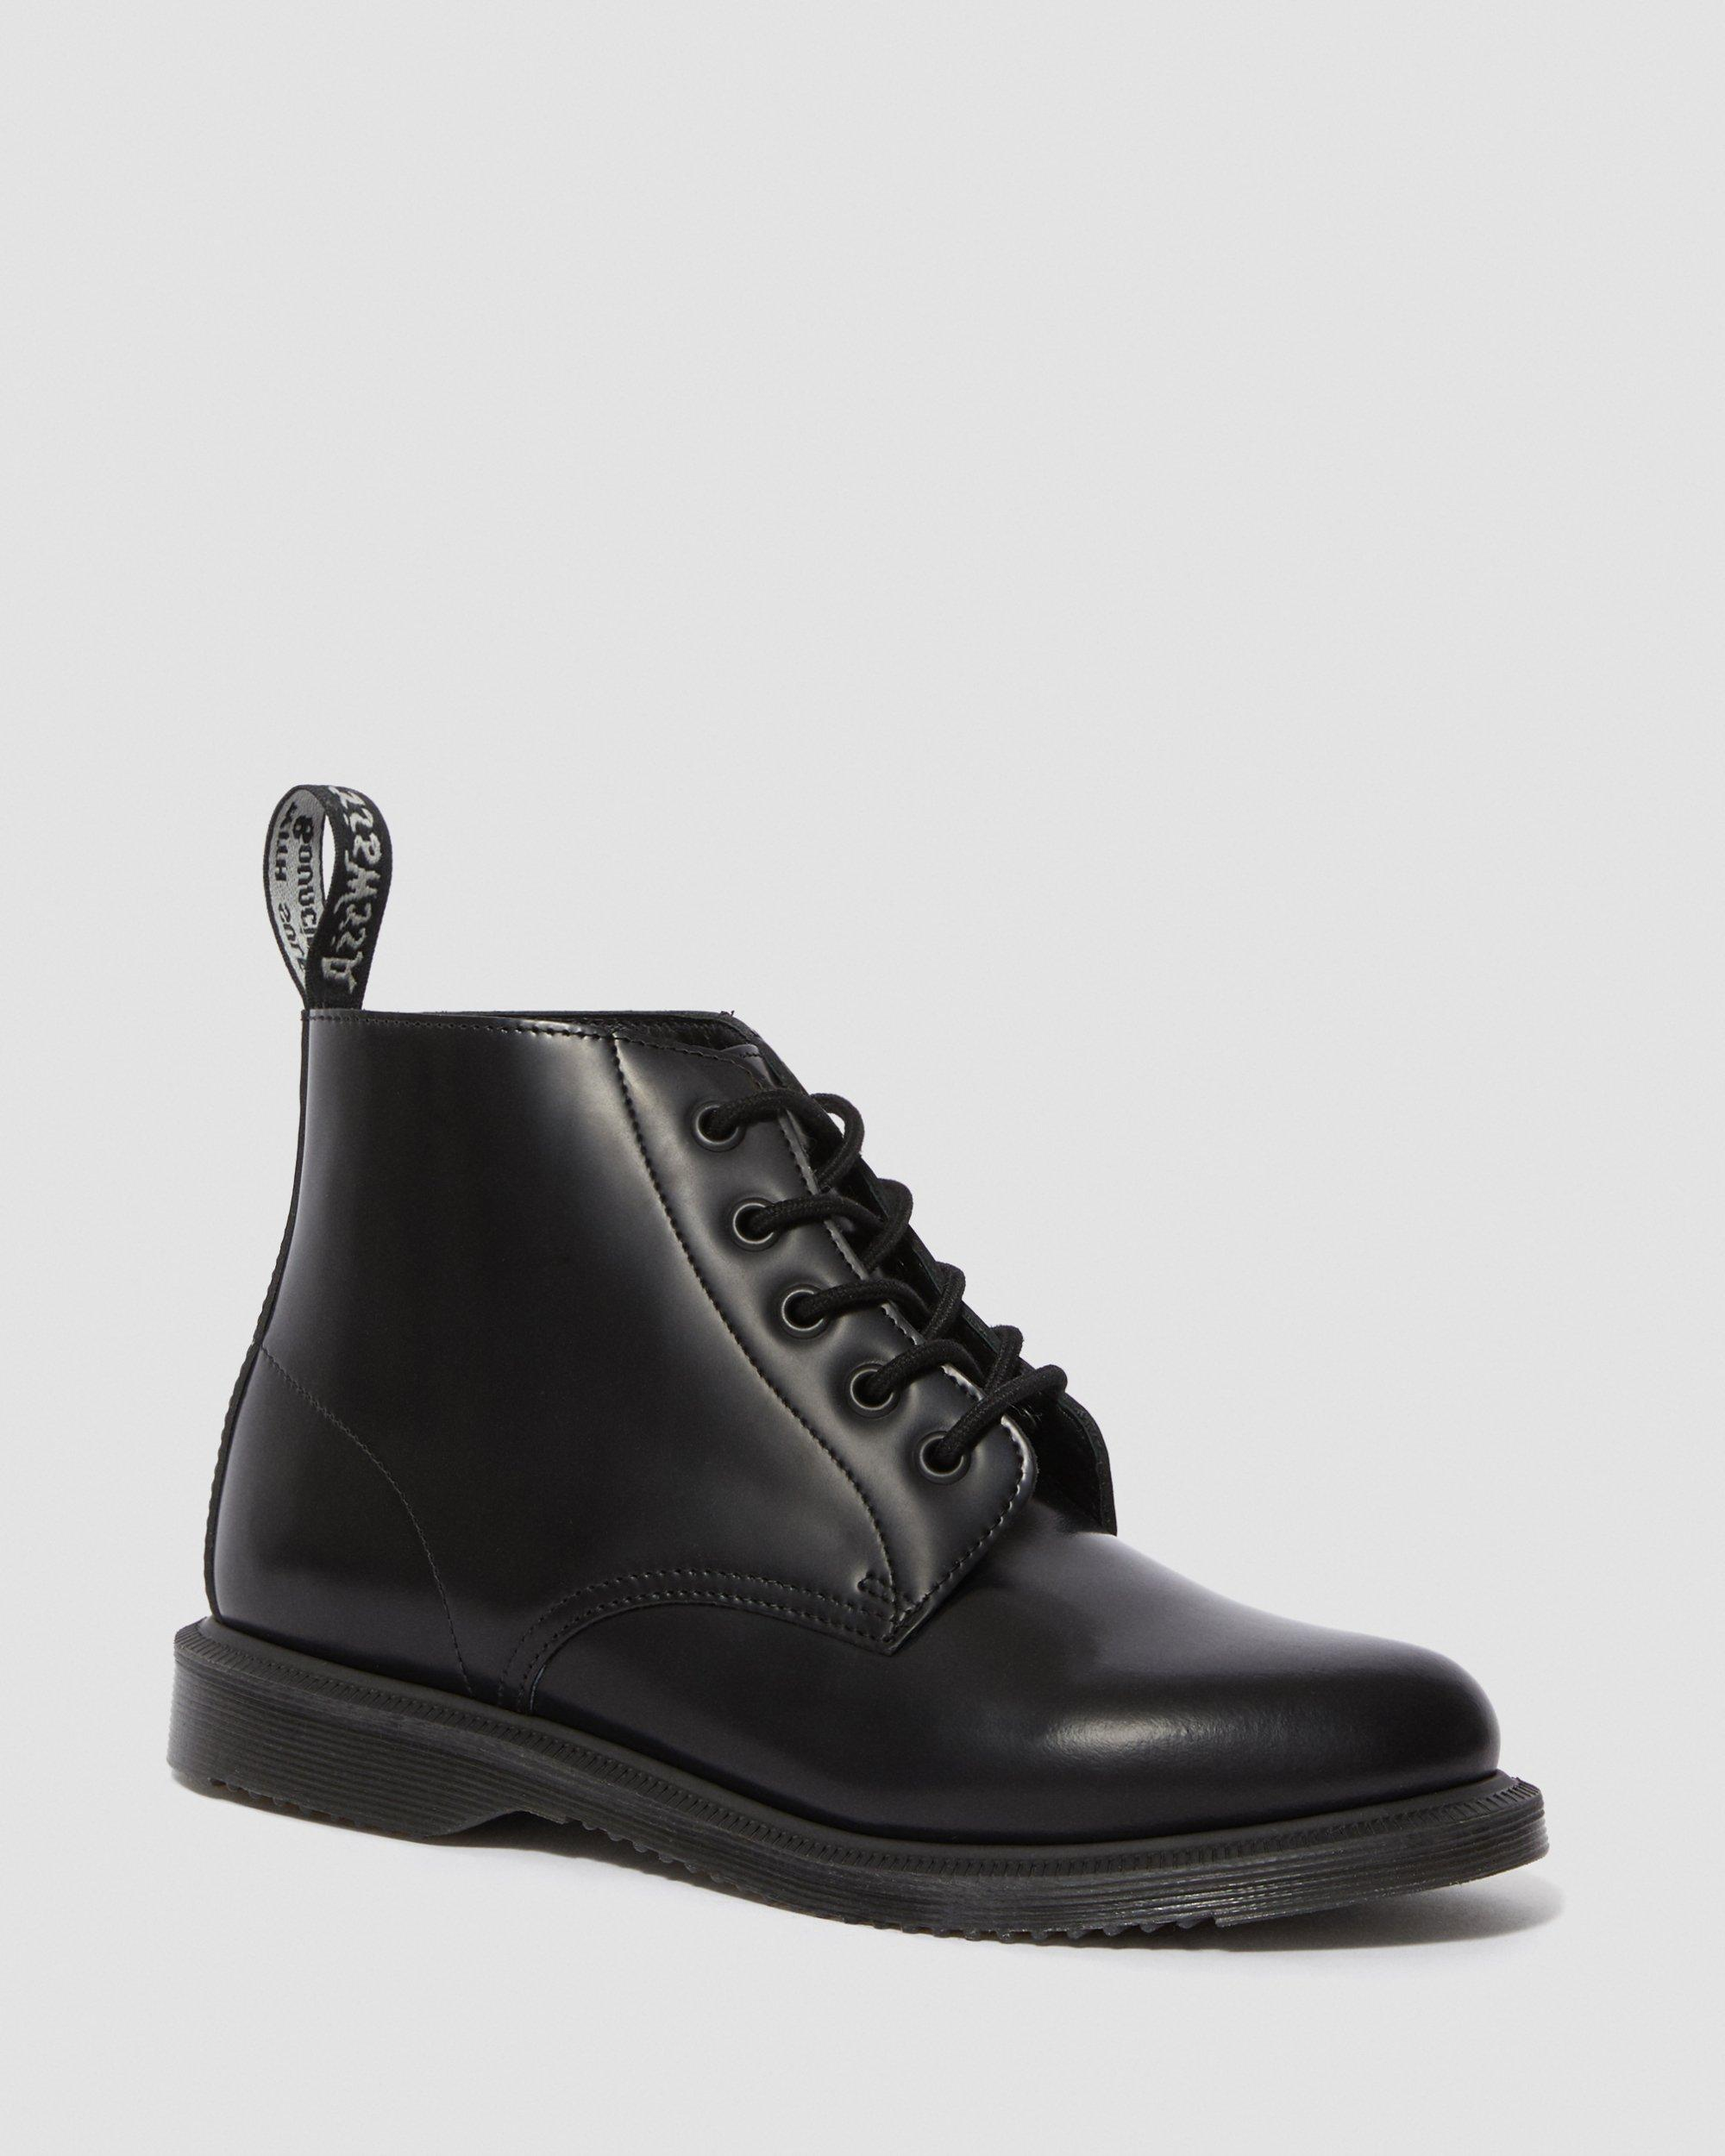 Dr.Martens 5 Eyelets Emmeline Polished Smooth Black Womens Boots